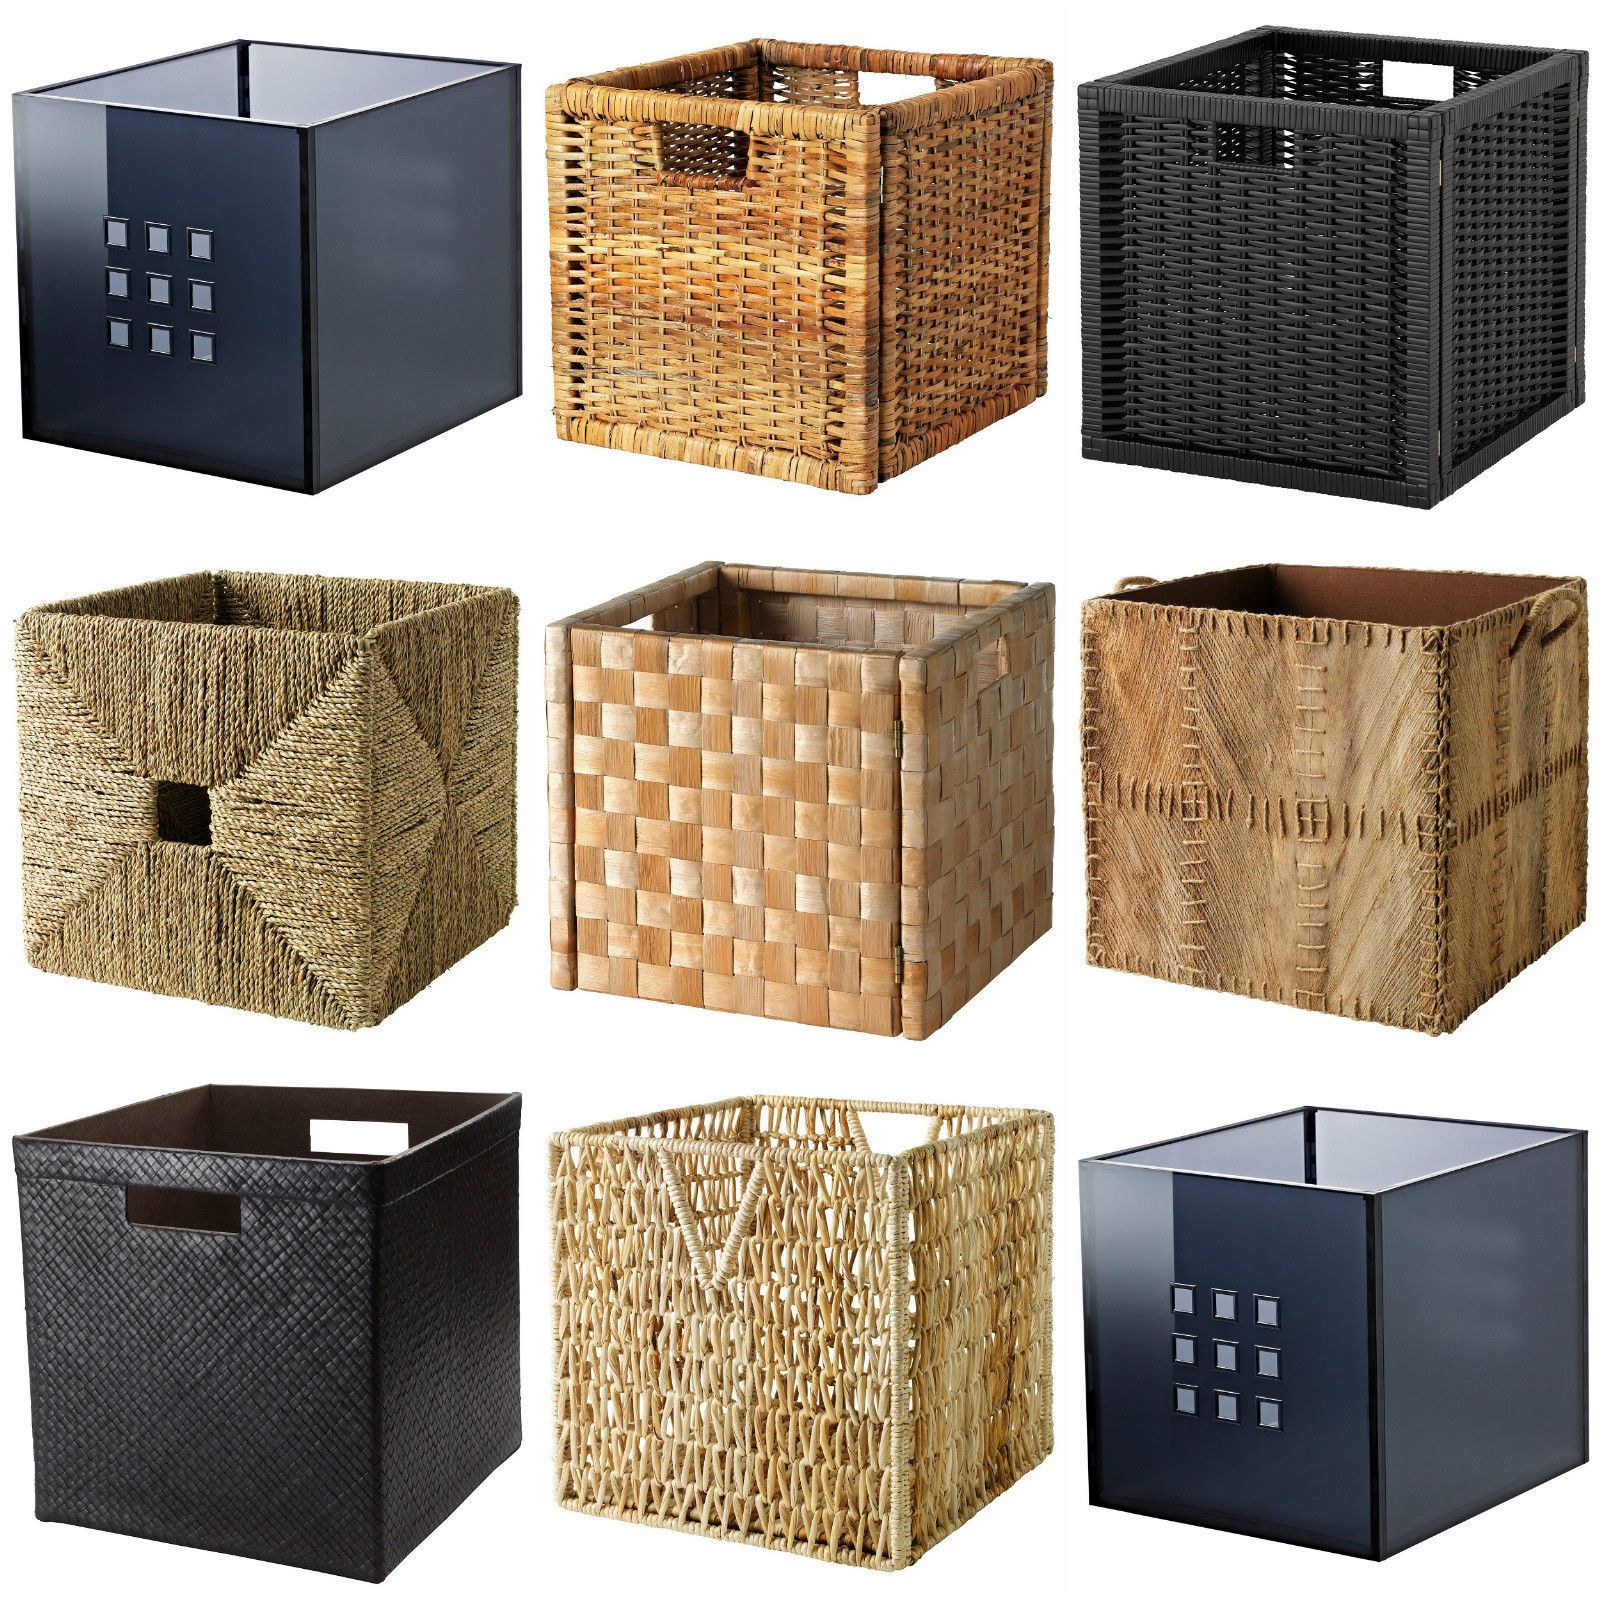 ikea boxes baskets dimensioned to fit expedit shelving. Black Bedroom Furniture Sets. Home Design Ideas